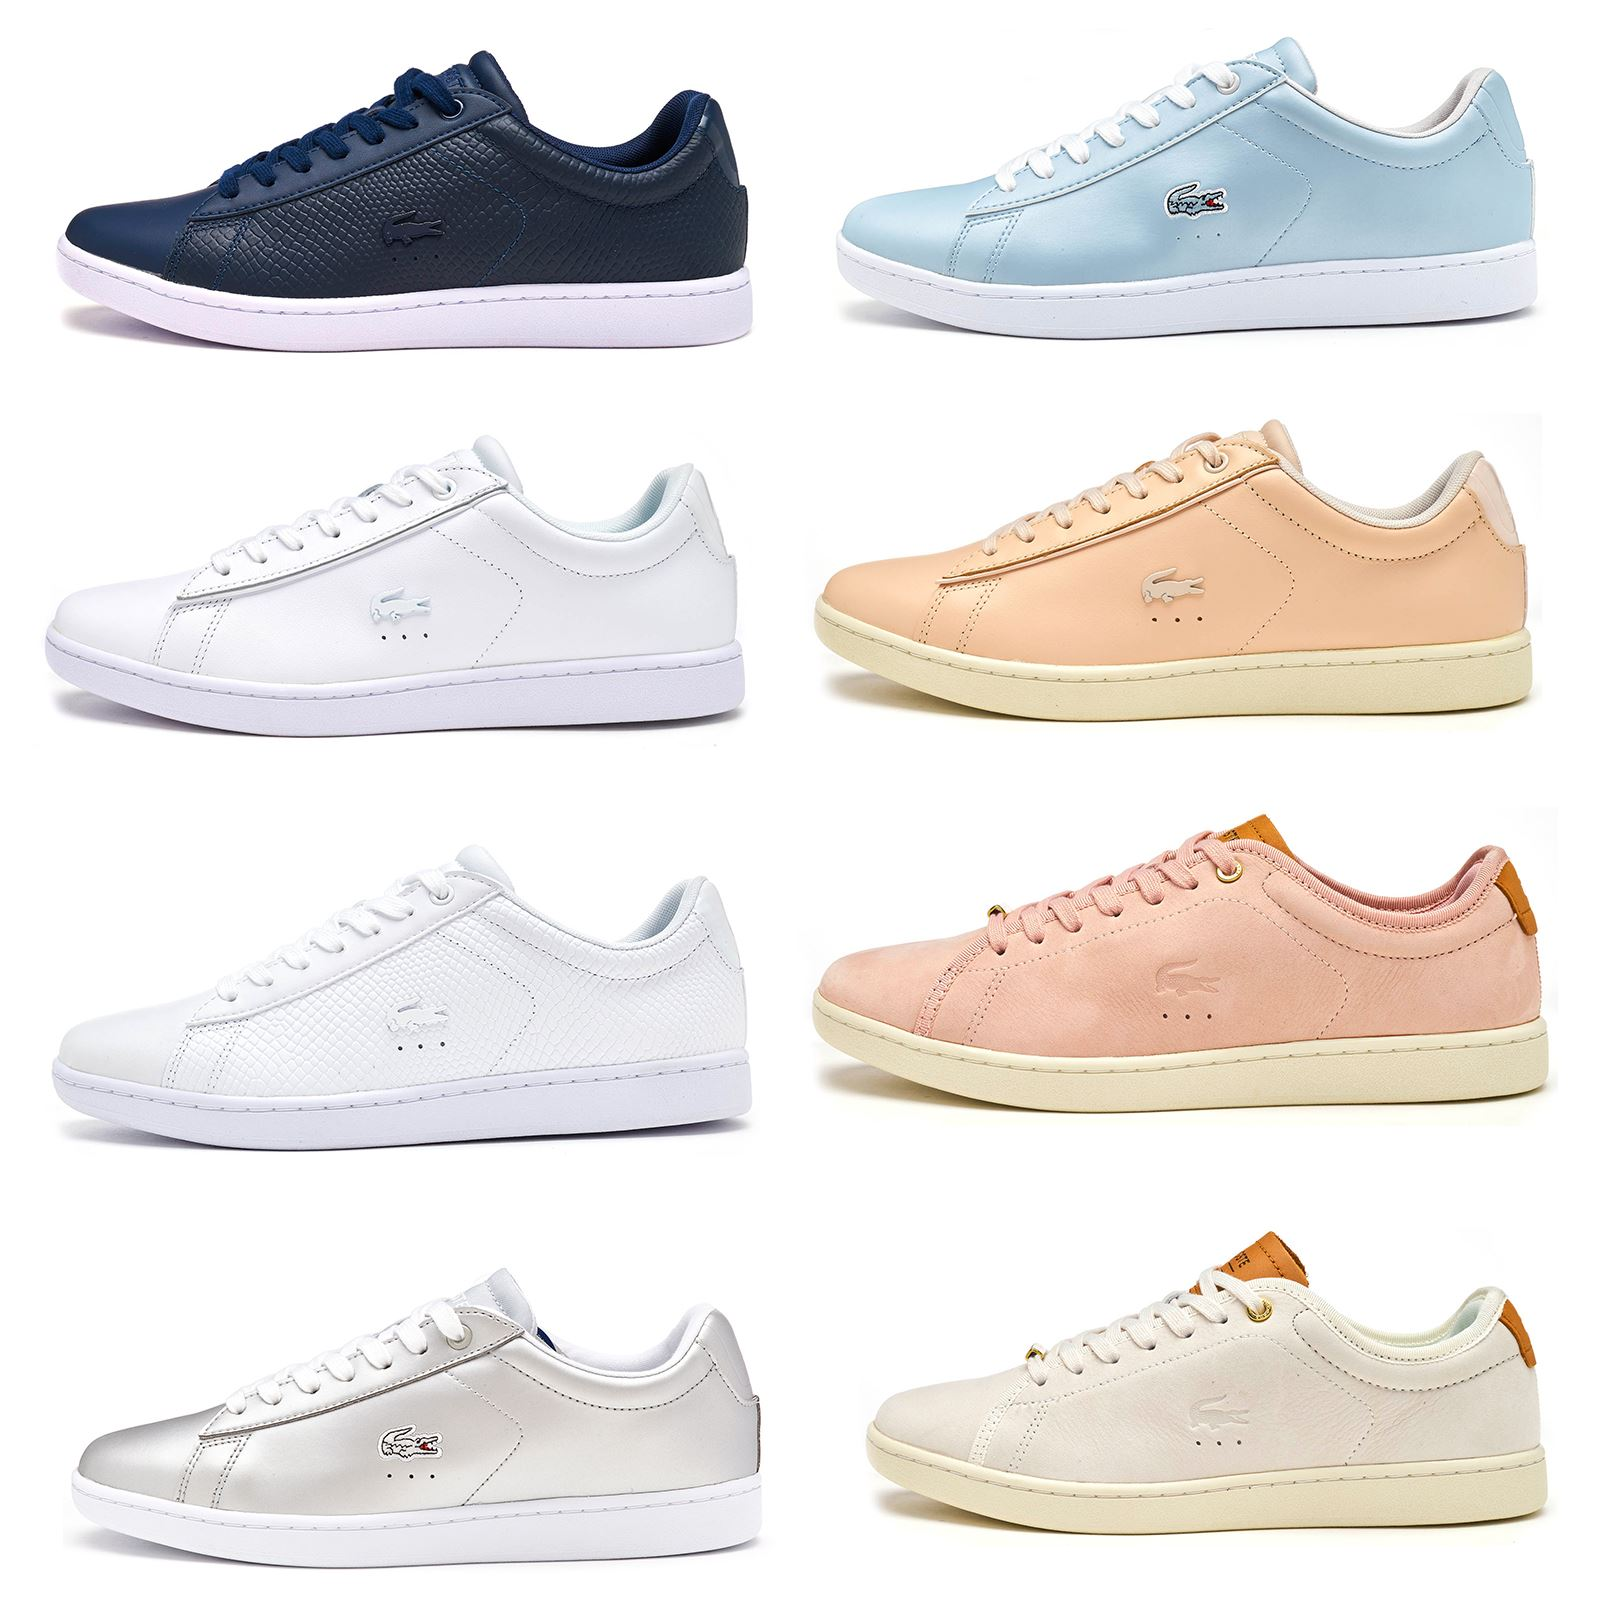 406867b83 Details about Lacoste Carnaby EVO 117 3 SPW Leather Women Trainers in Grey    Pink 733SPW1012